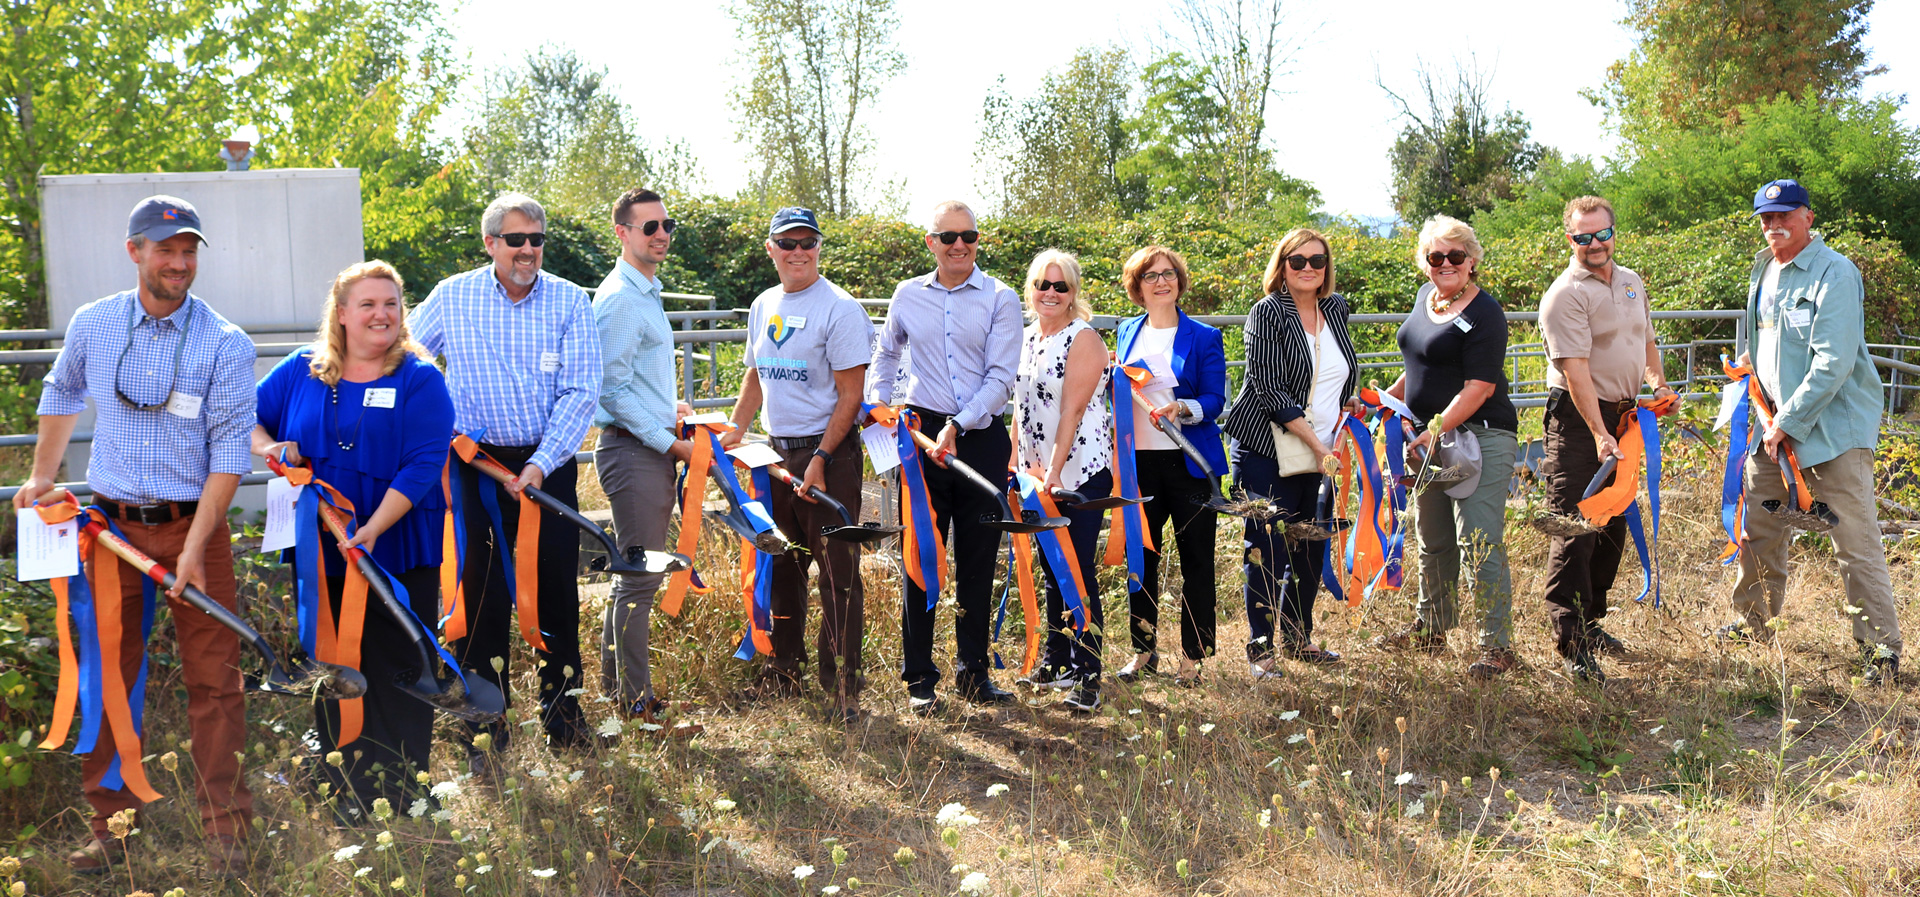 Project partners and supporters from throughout Washington and Oregon came together to break ground on the Steigerwald Floodplain Restoration Project on Thursday, September 5th.